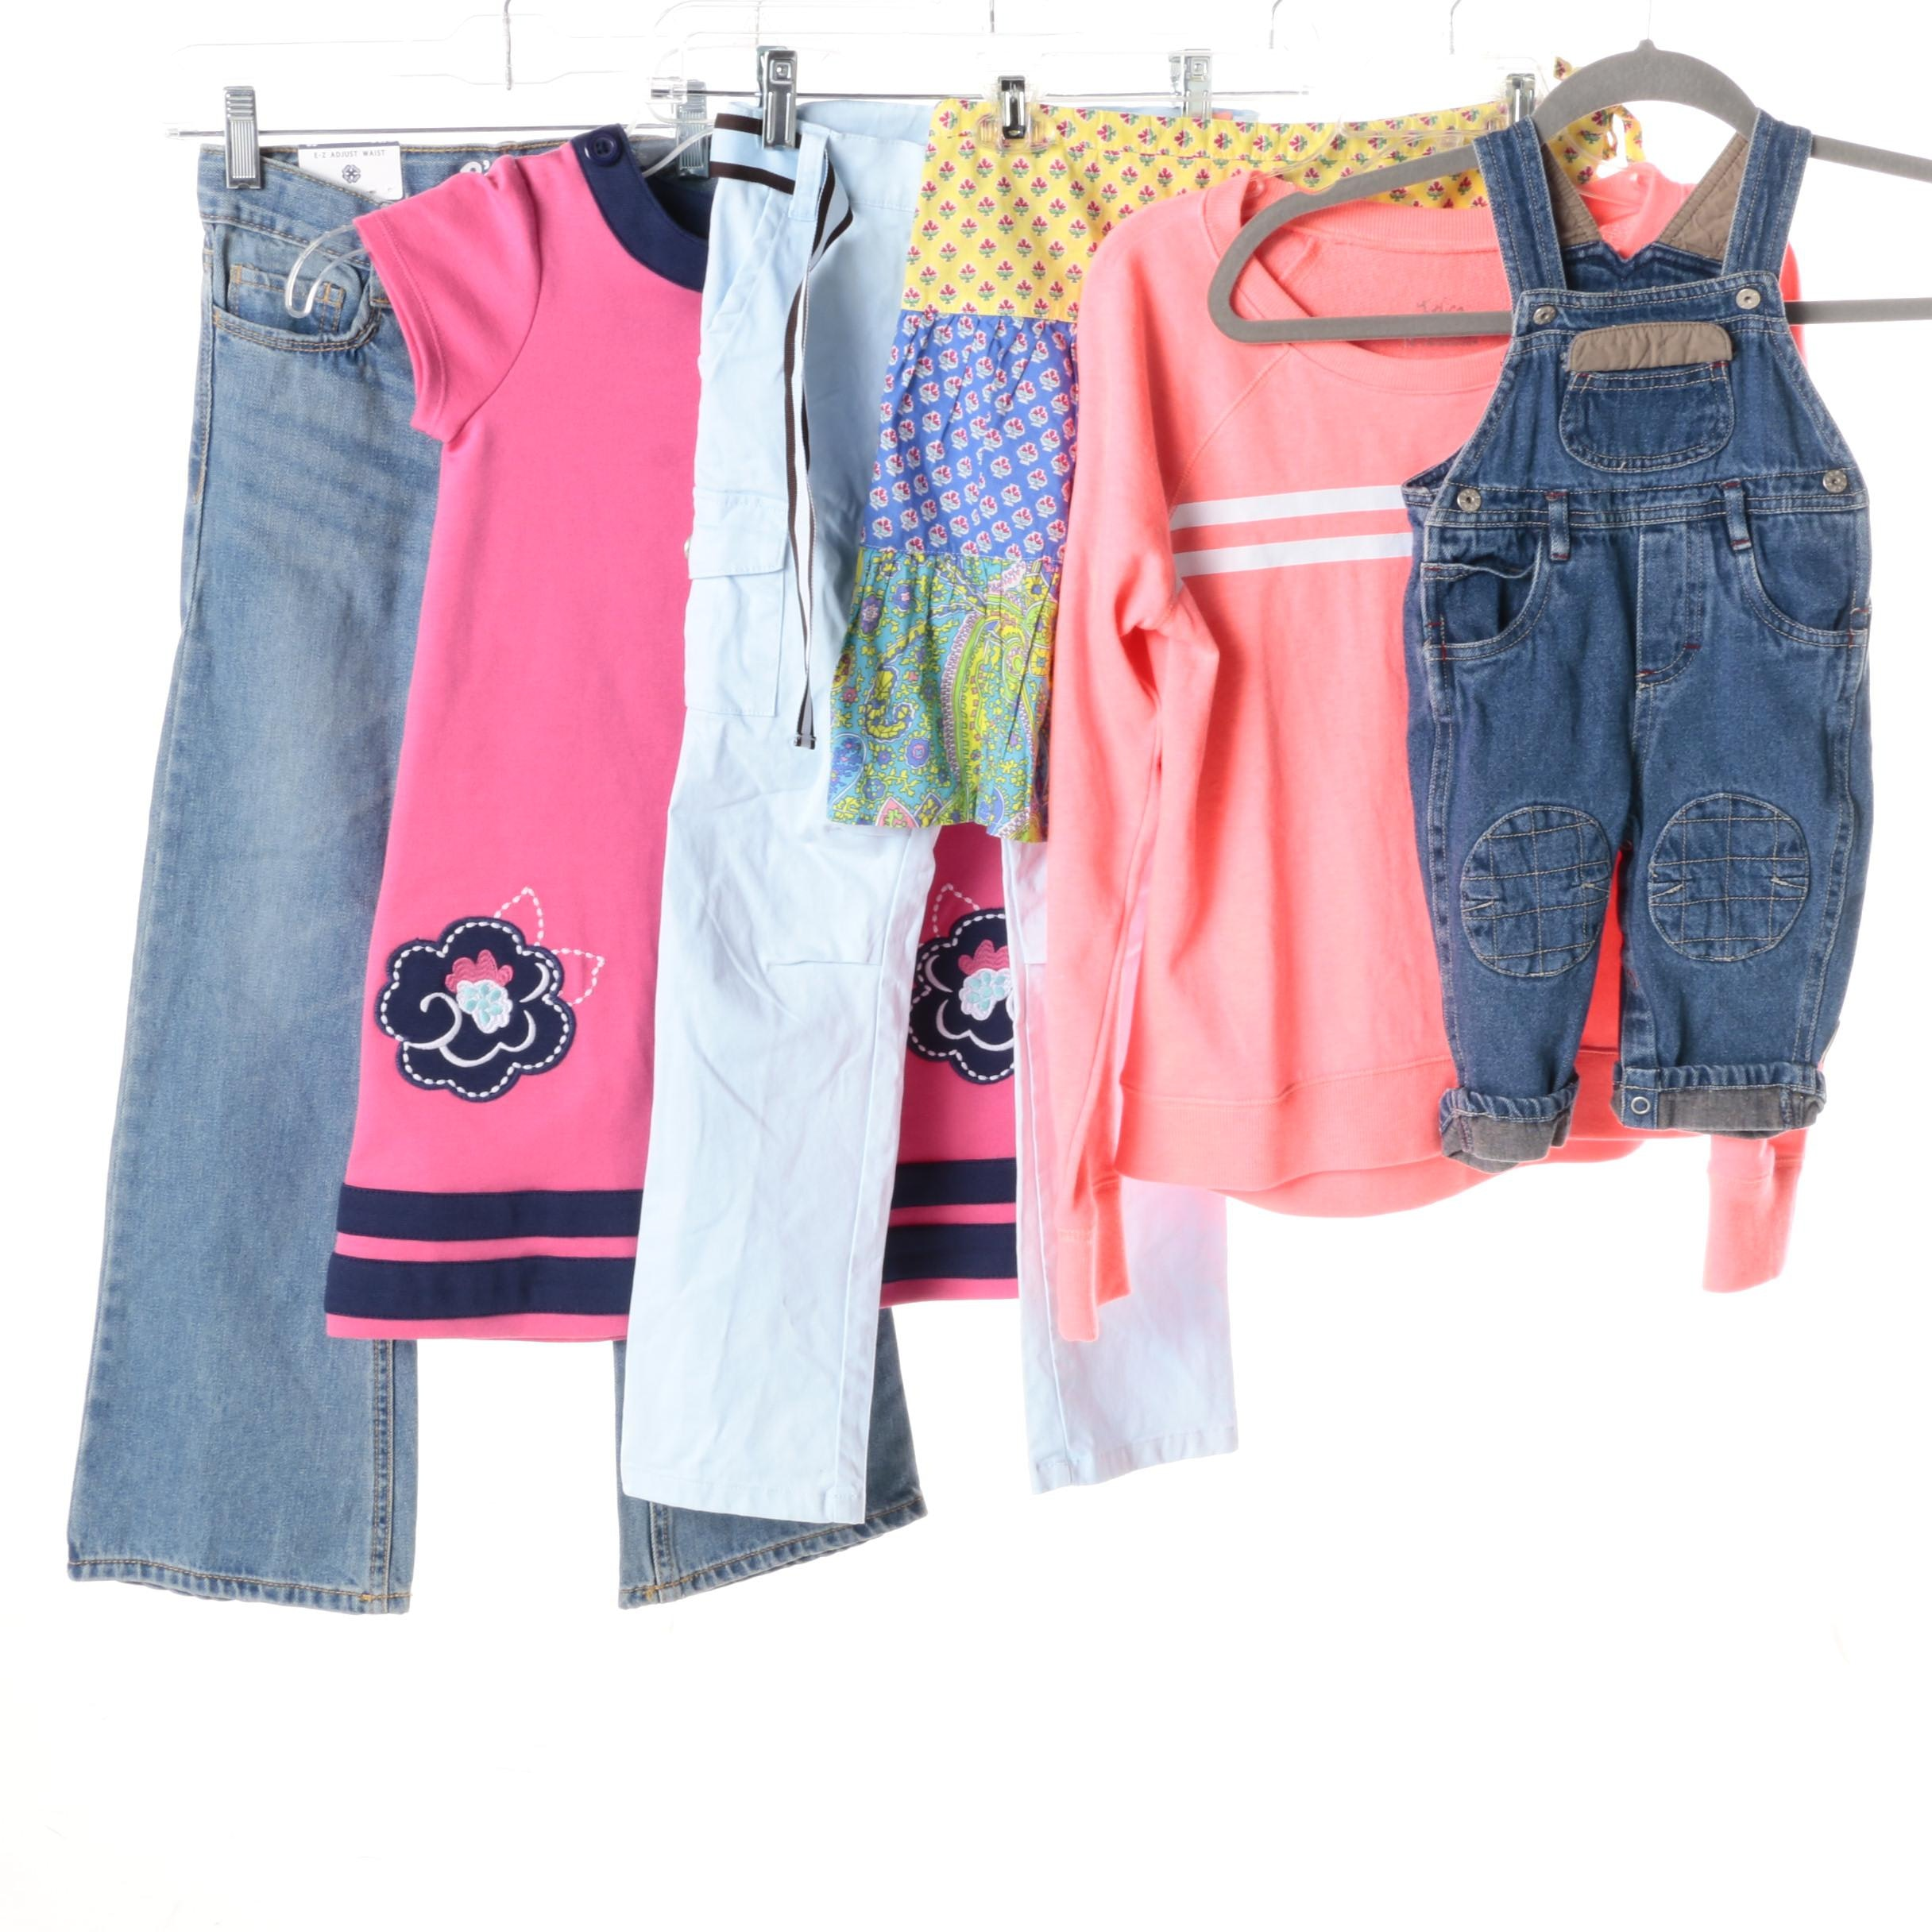 Girl's Jeans, Dresses and Shirt Including Justice, Ralph Lauren and Gymboree